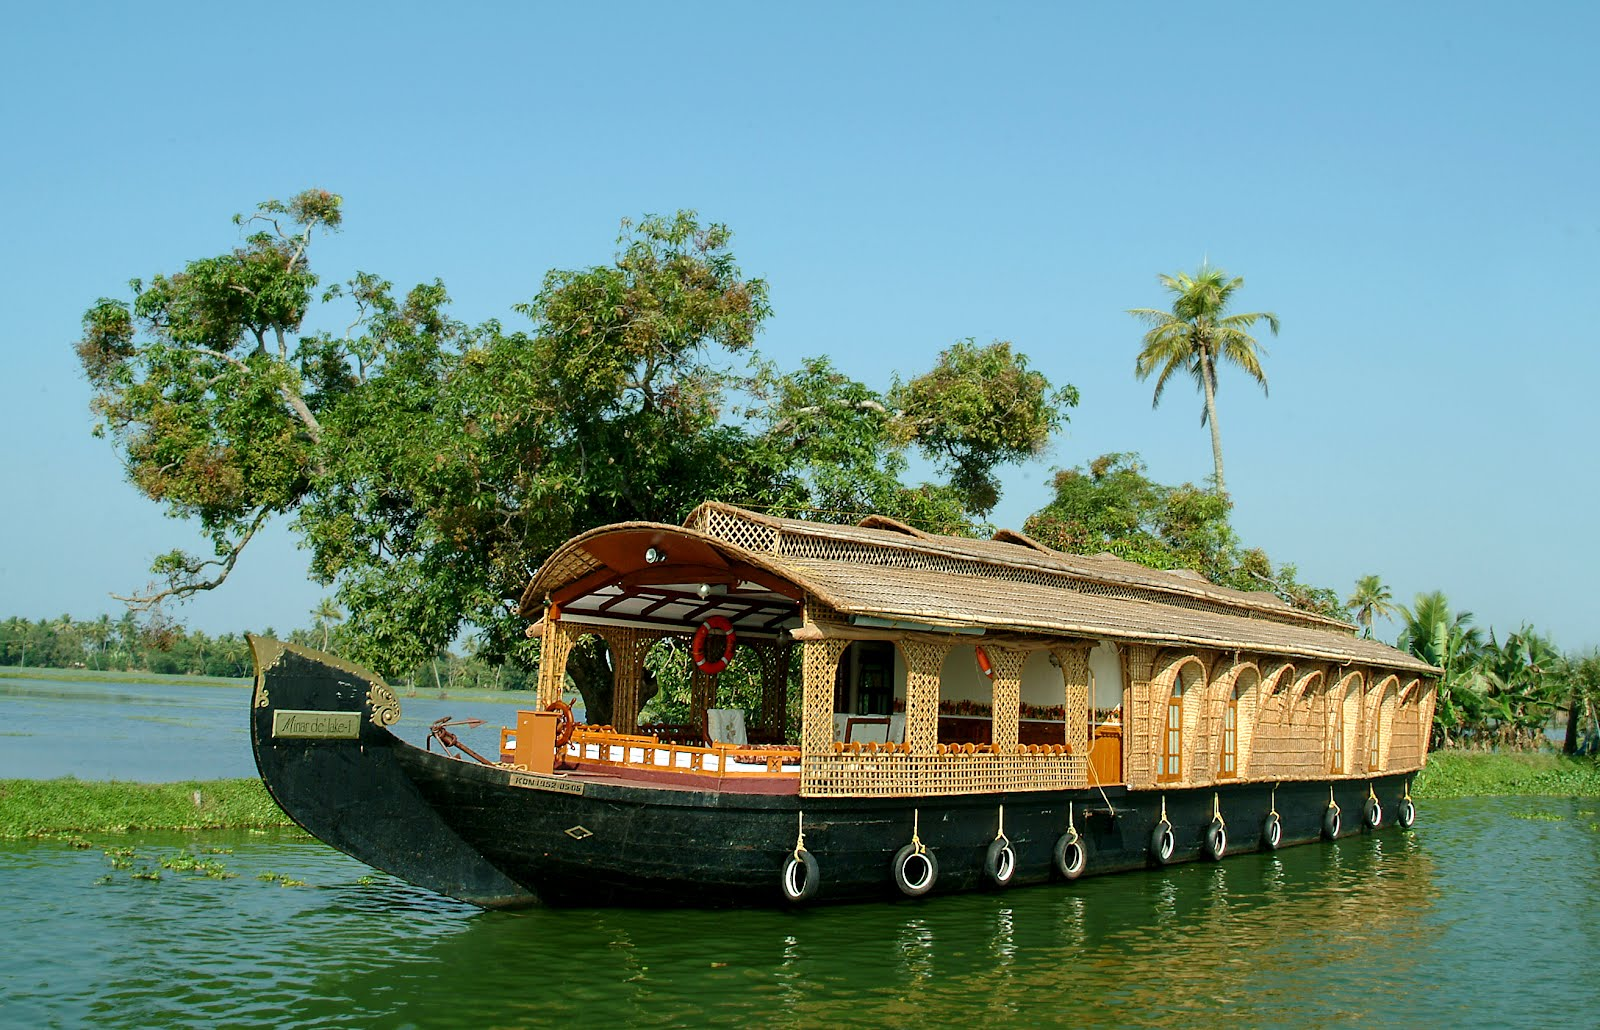 Houseboat Cruise In Alleppey - The Best To Experience